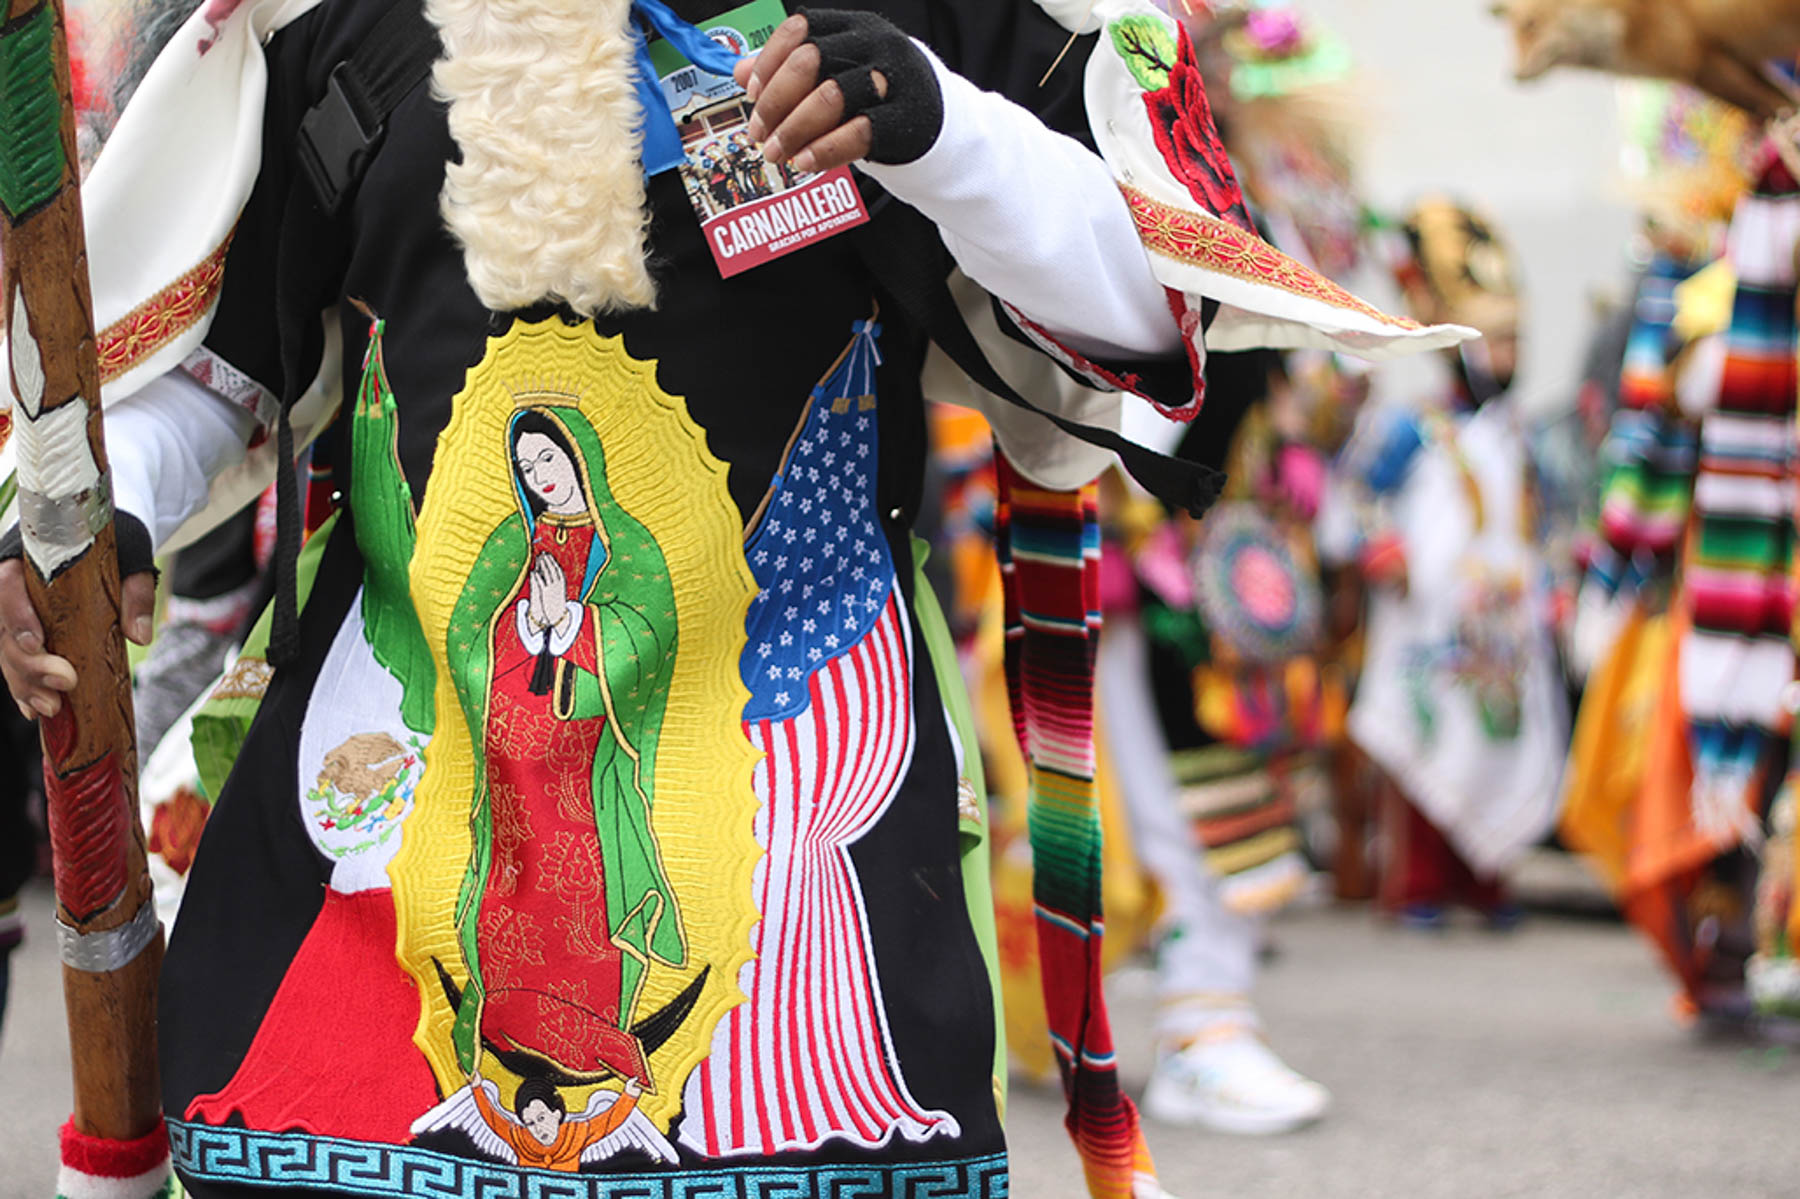 The Virgin of Guadalupe, an iconic image in Mexican culture, adorns the costumes of carnavaleros, the performers in the yearly festival, Carnaval de Puebla.